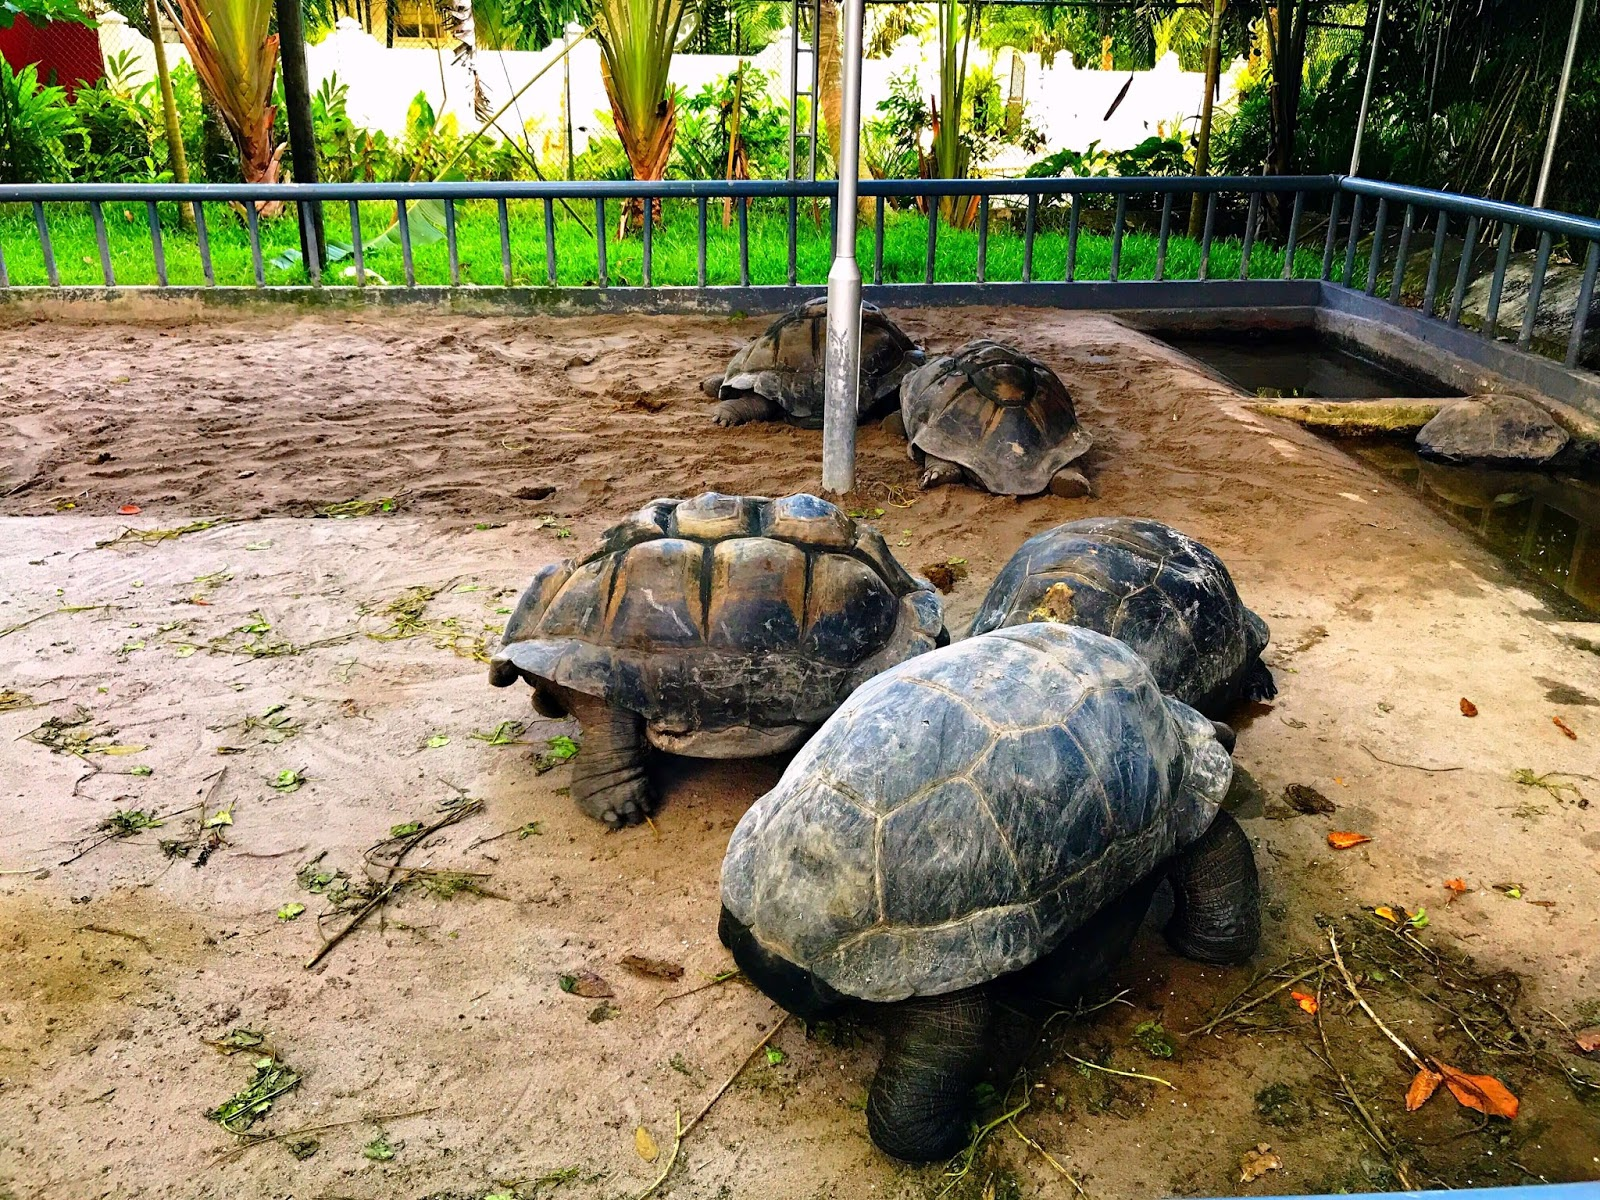 Lazy Turtles in a Small Turtle Farm in Beau Vallon, Mahé Island